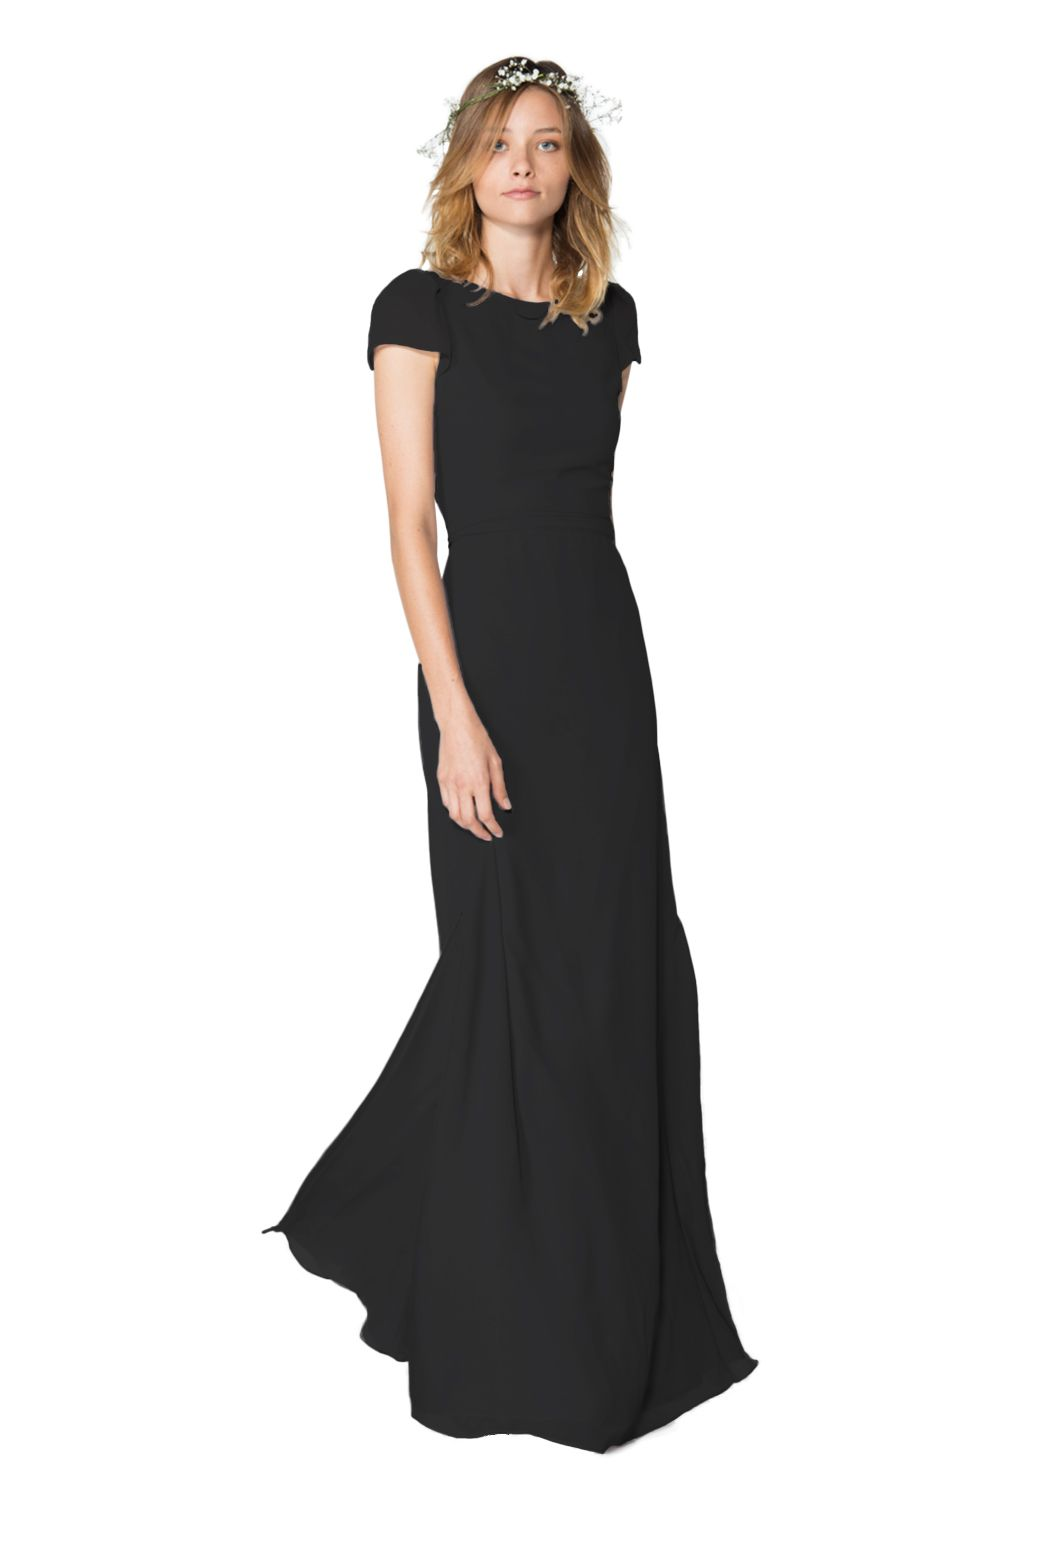 Black dress for wedding party  Shop Joanna August Bridesmaid Dress  Kimberly Long in Chiffon at